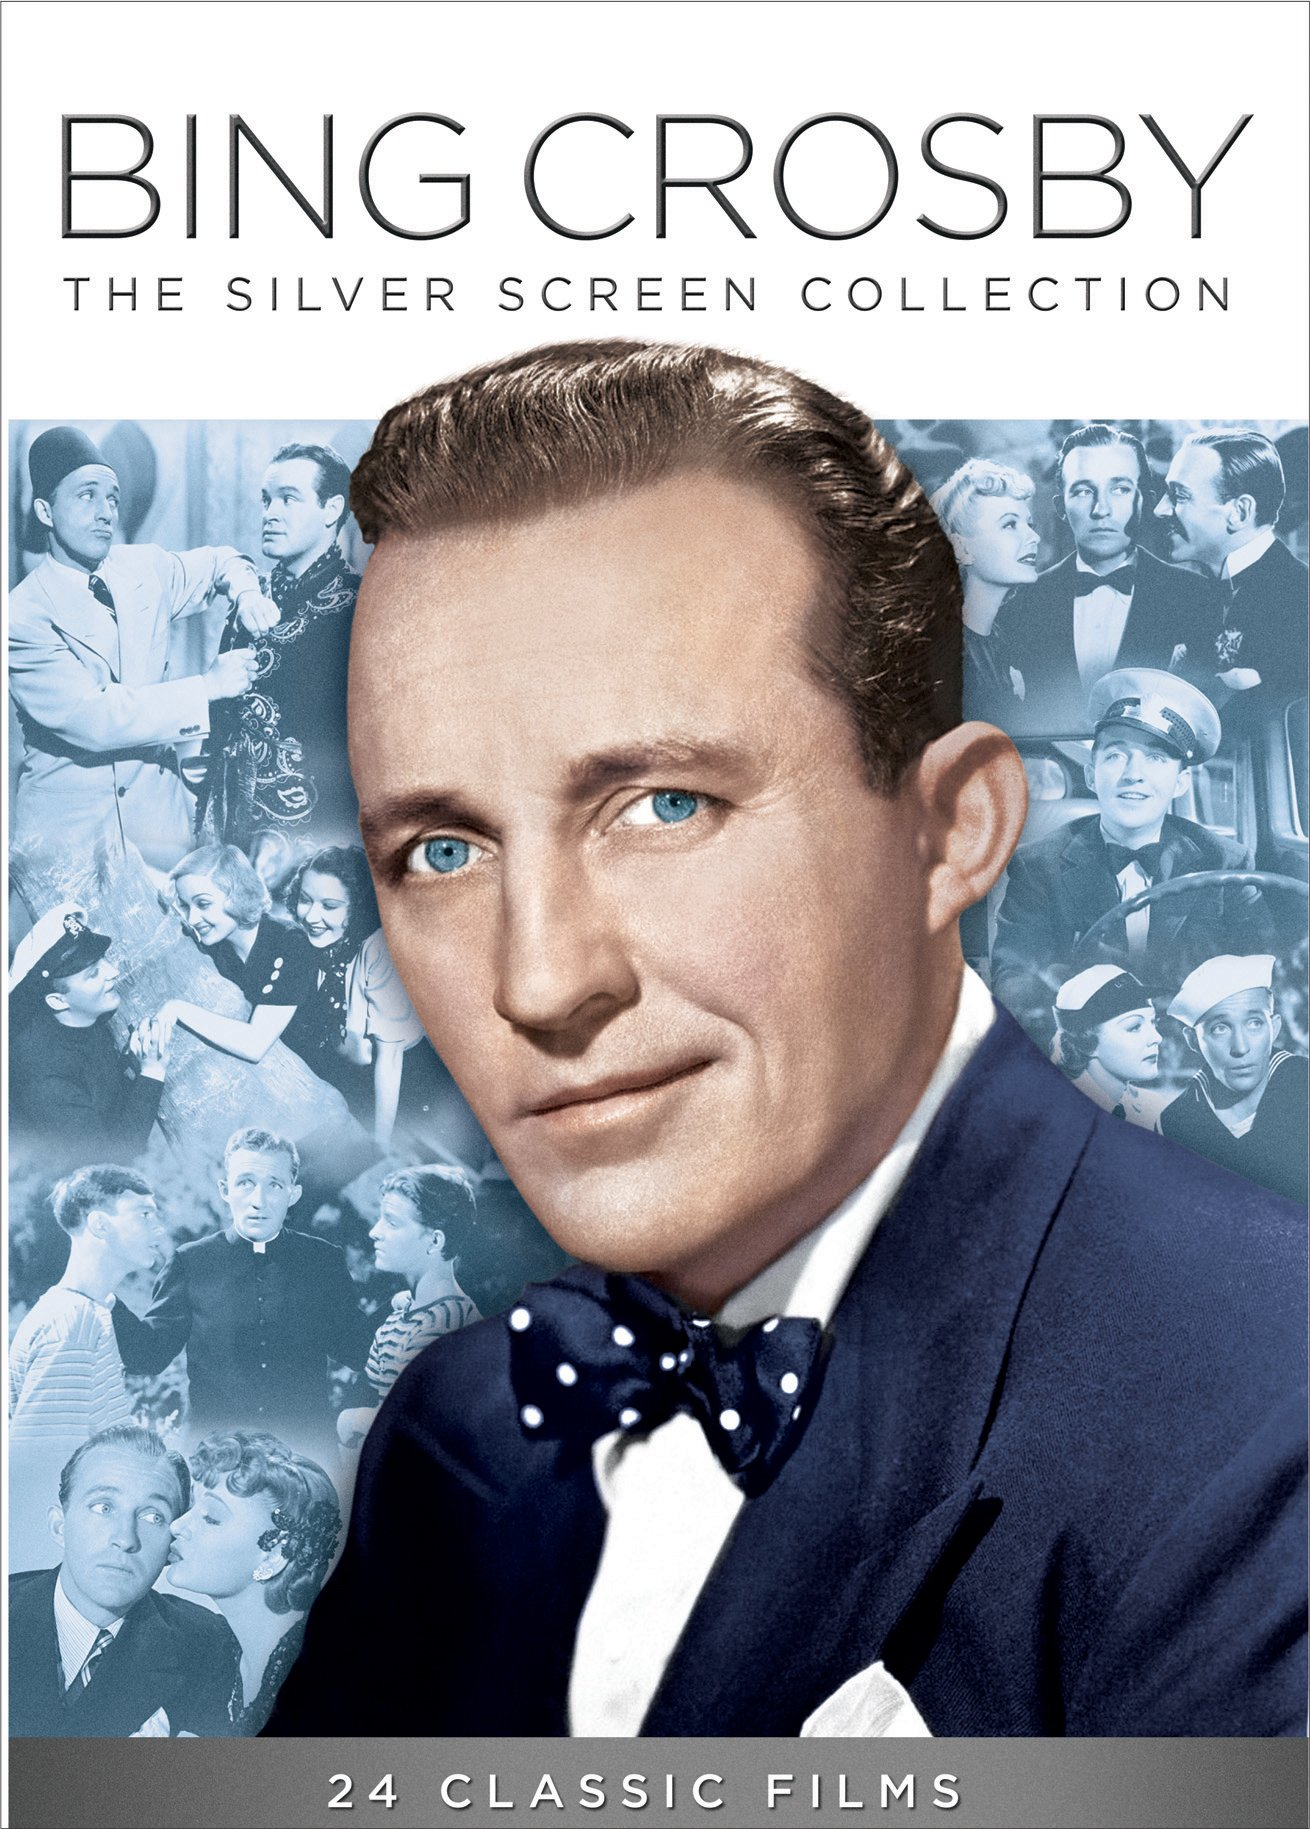 DVD : Bing Crosby: The Silver Screen Collection (Boxed Set, Snap Case, Slipsleeve Packaging, 13PC)